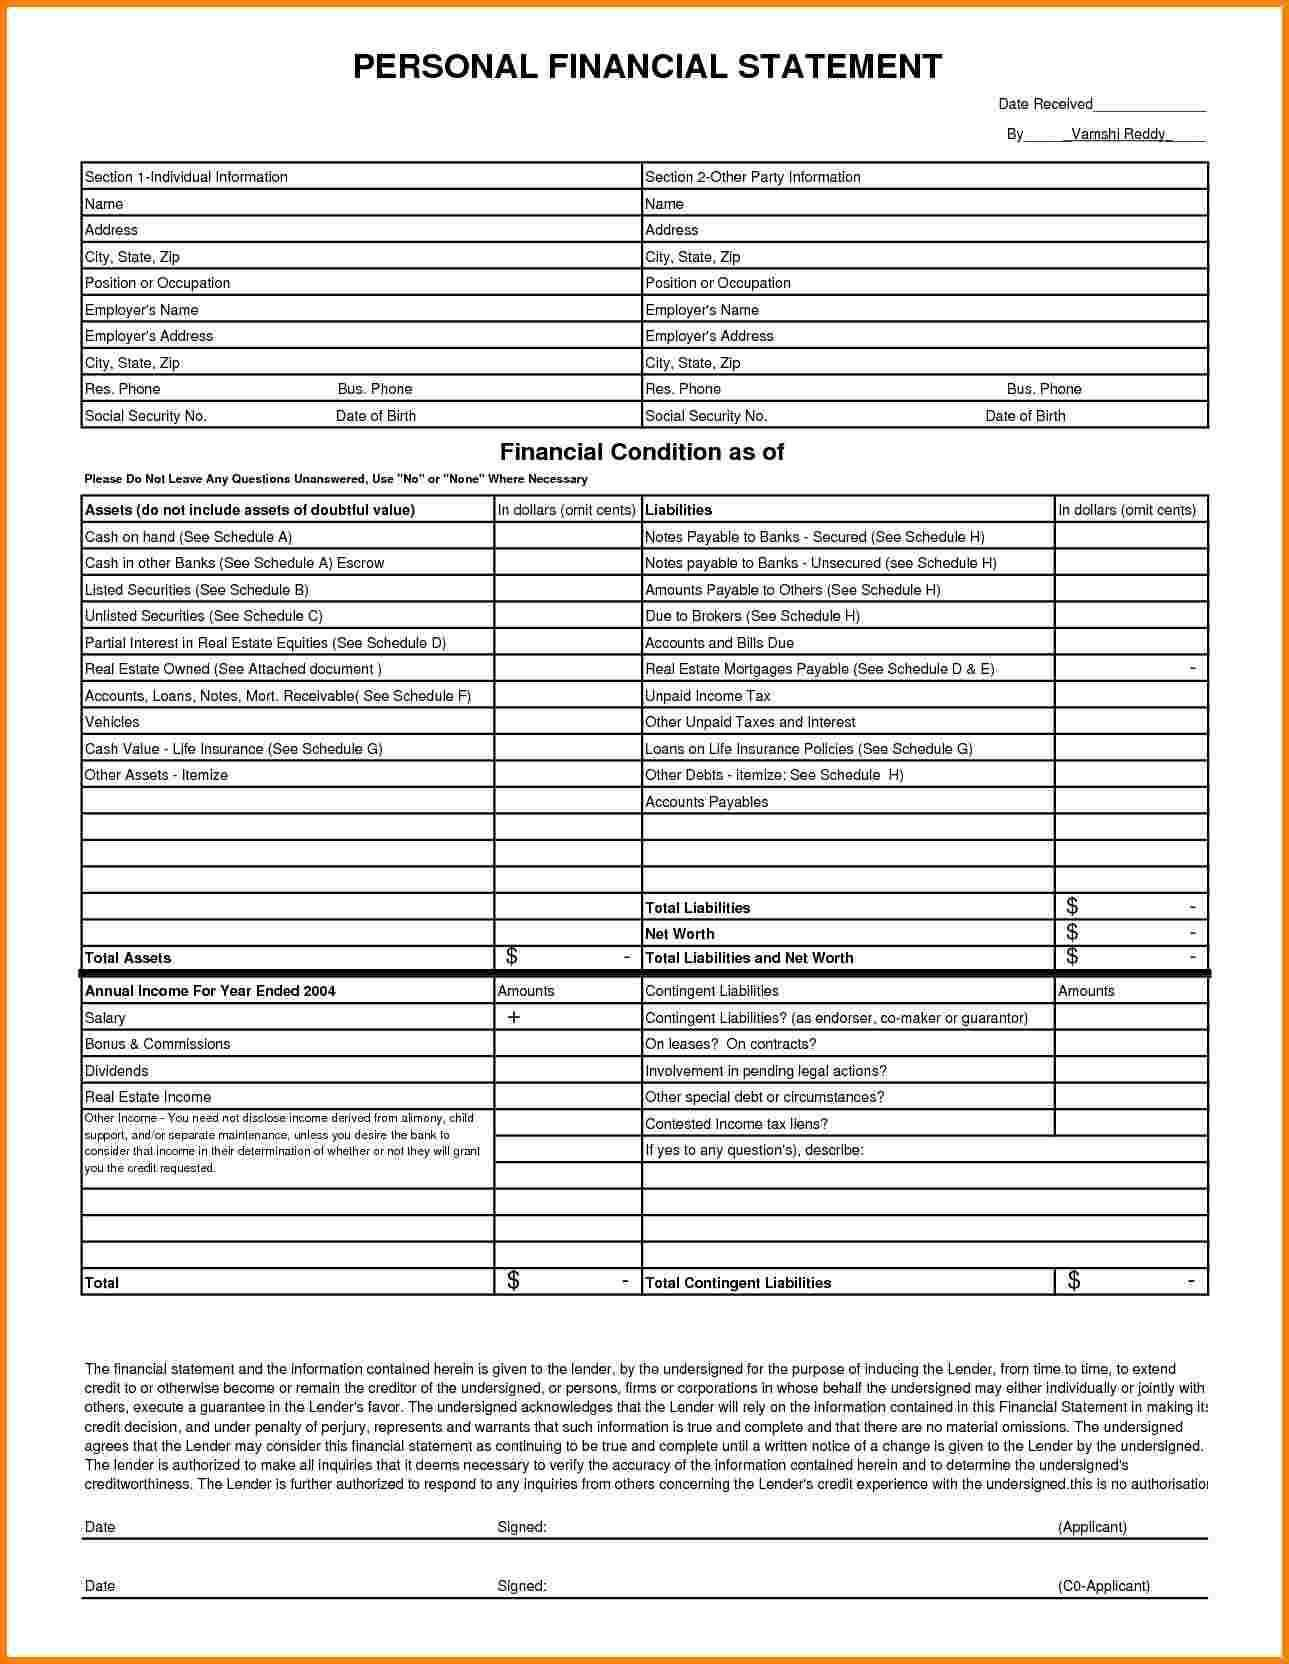 002 Marvelou Bank Statement Excel Format Free Download Image  Of Baroda Stock In IndiaFull